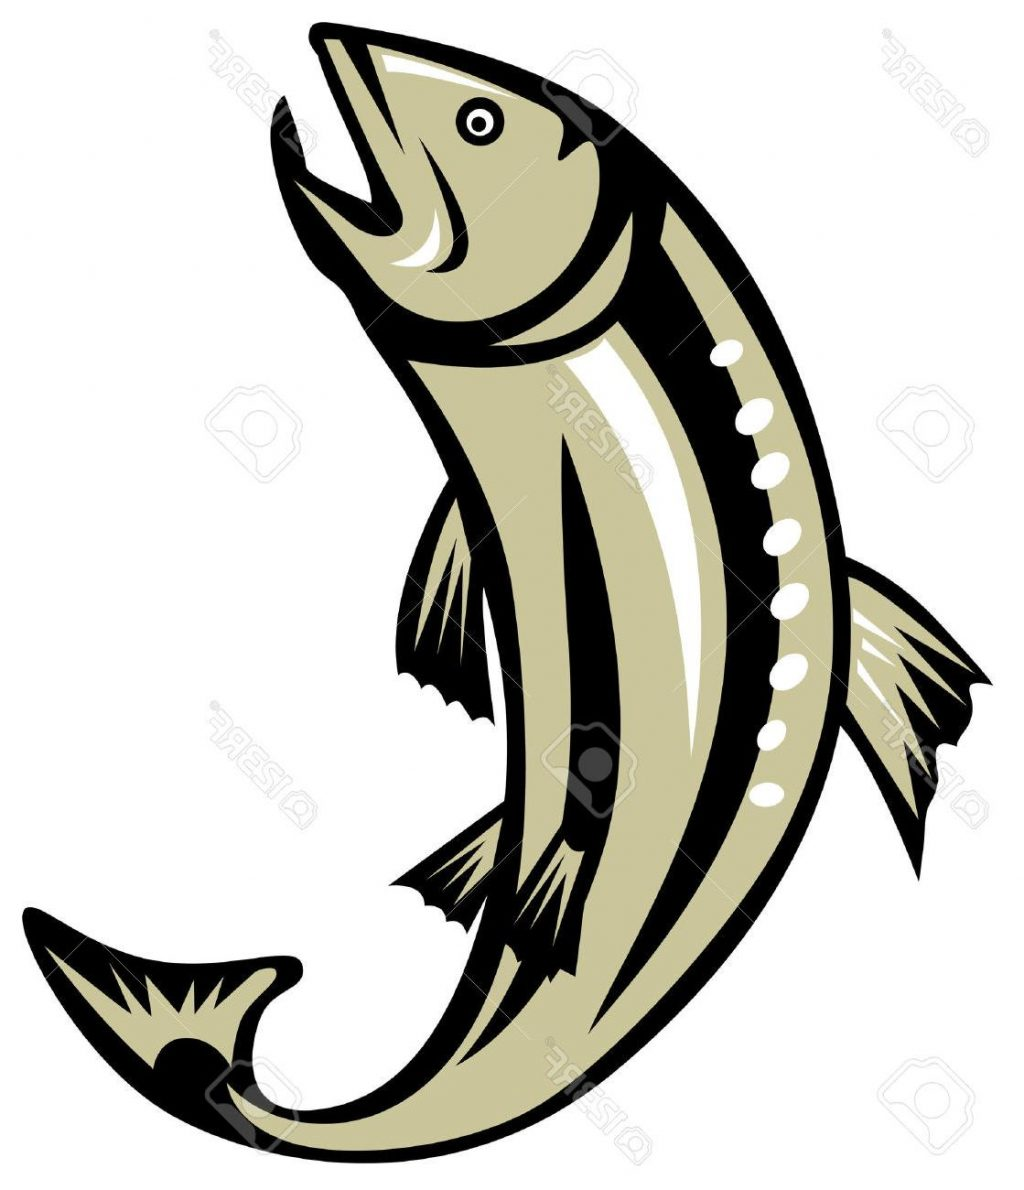 Jumping salmon clipart transparent library Collection of Salmon clipart | Free download best Salmon ... transparent library